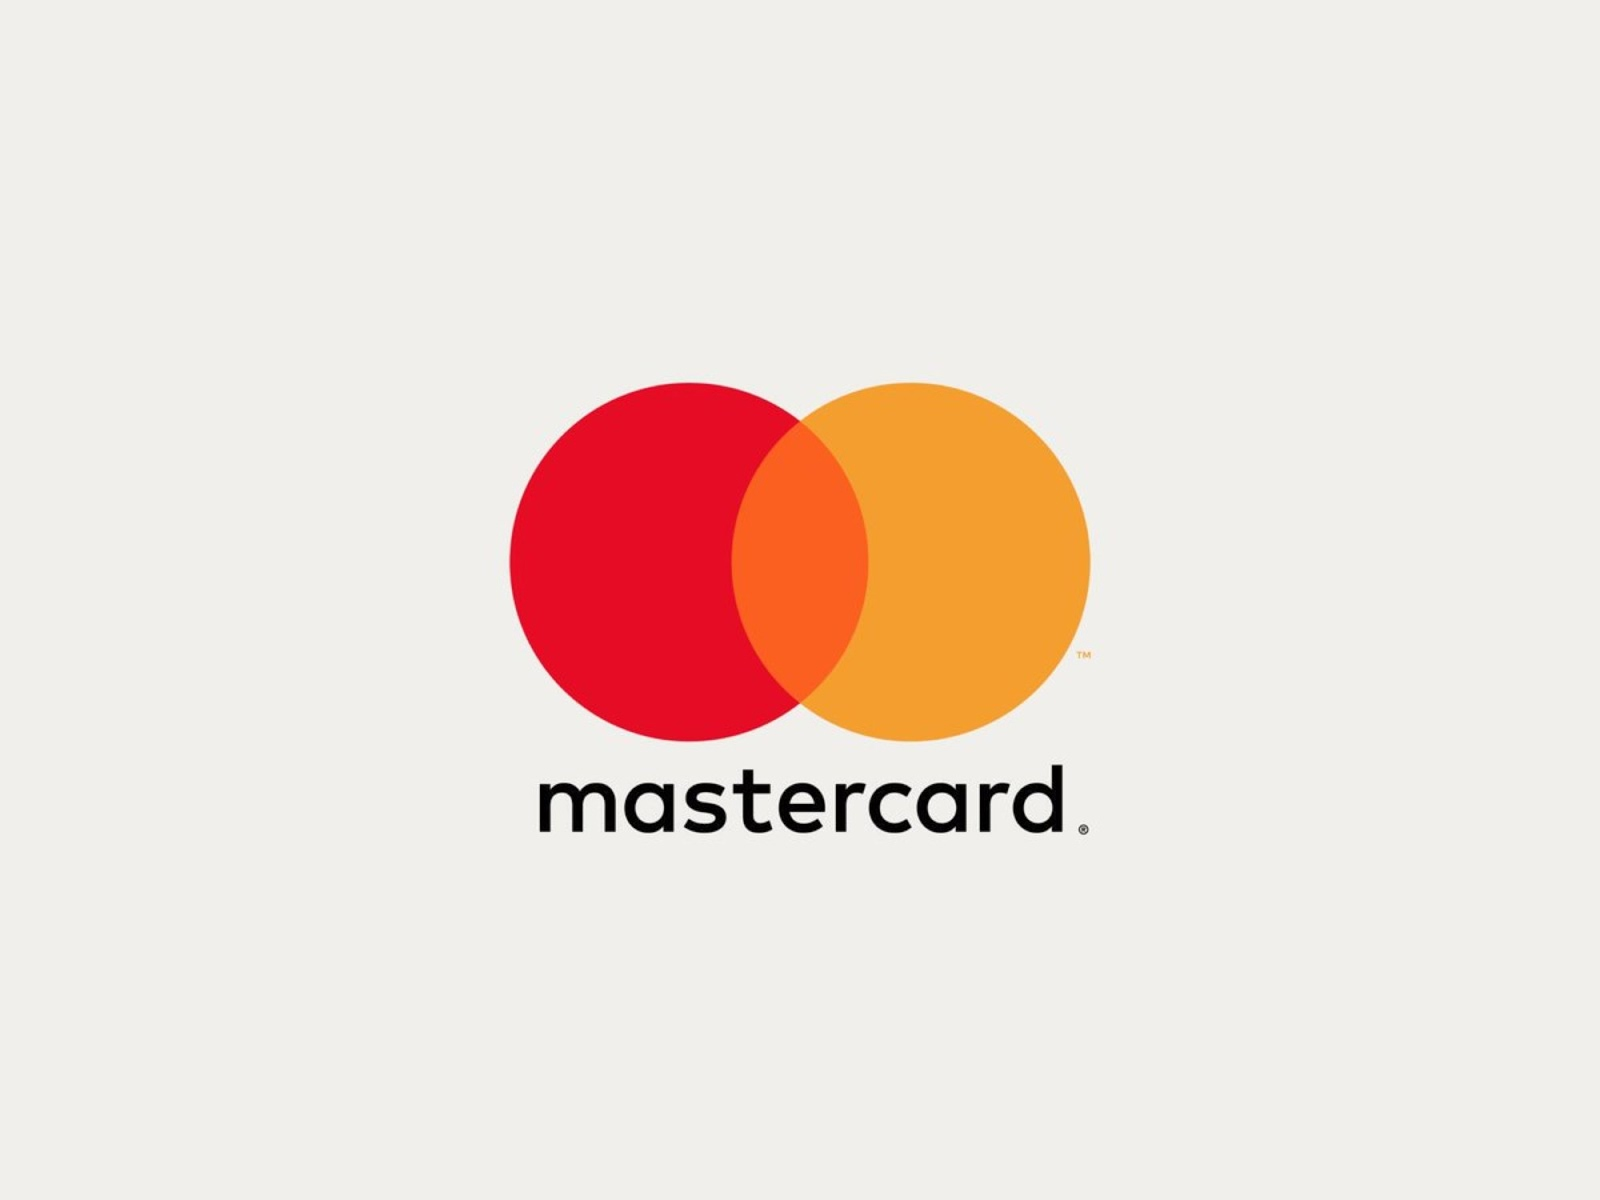 Appealing mastercard logo vector photos